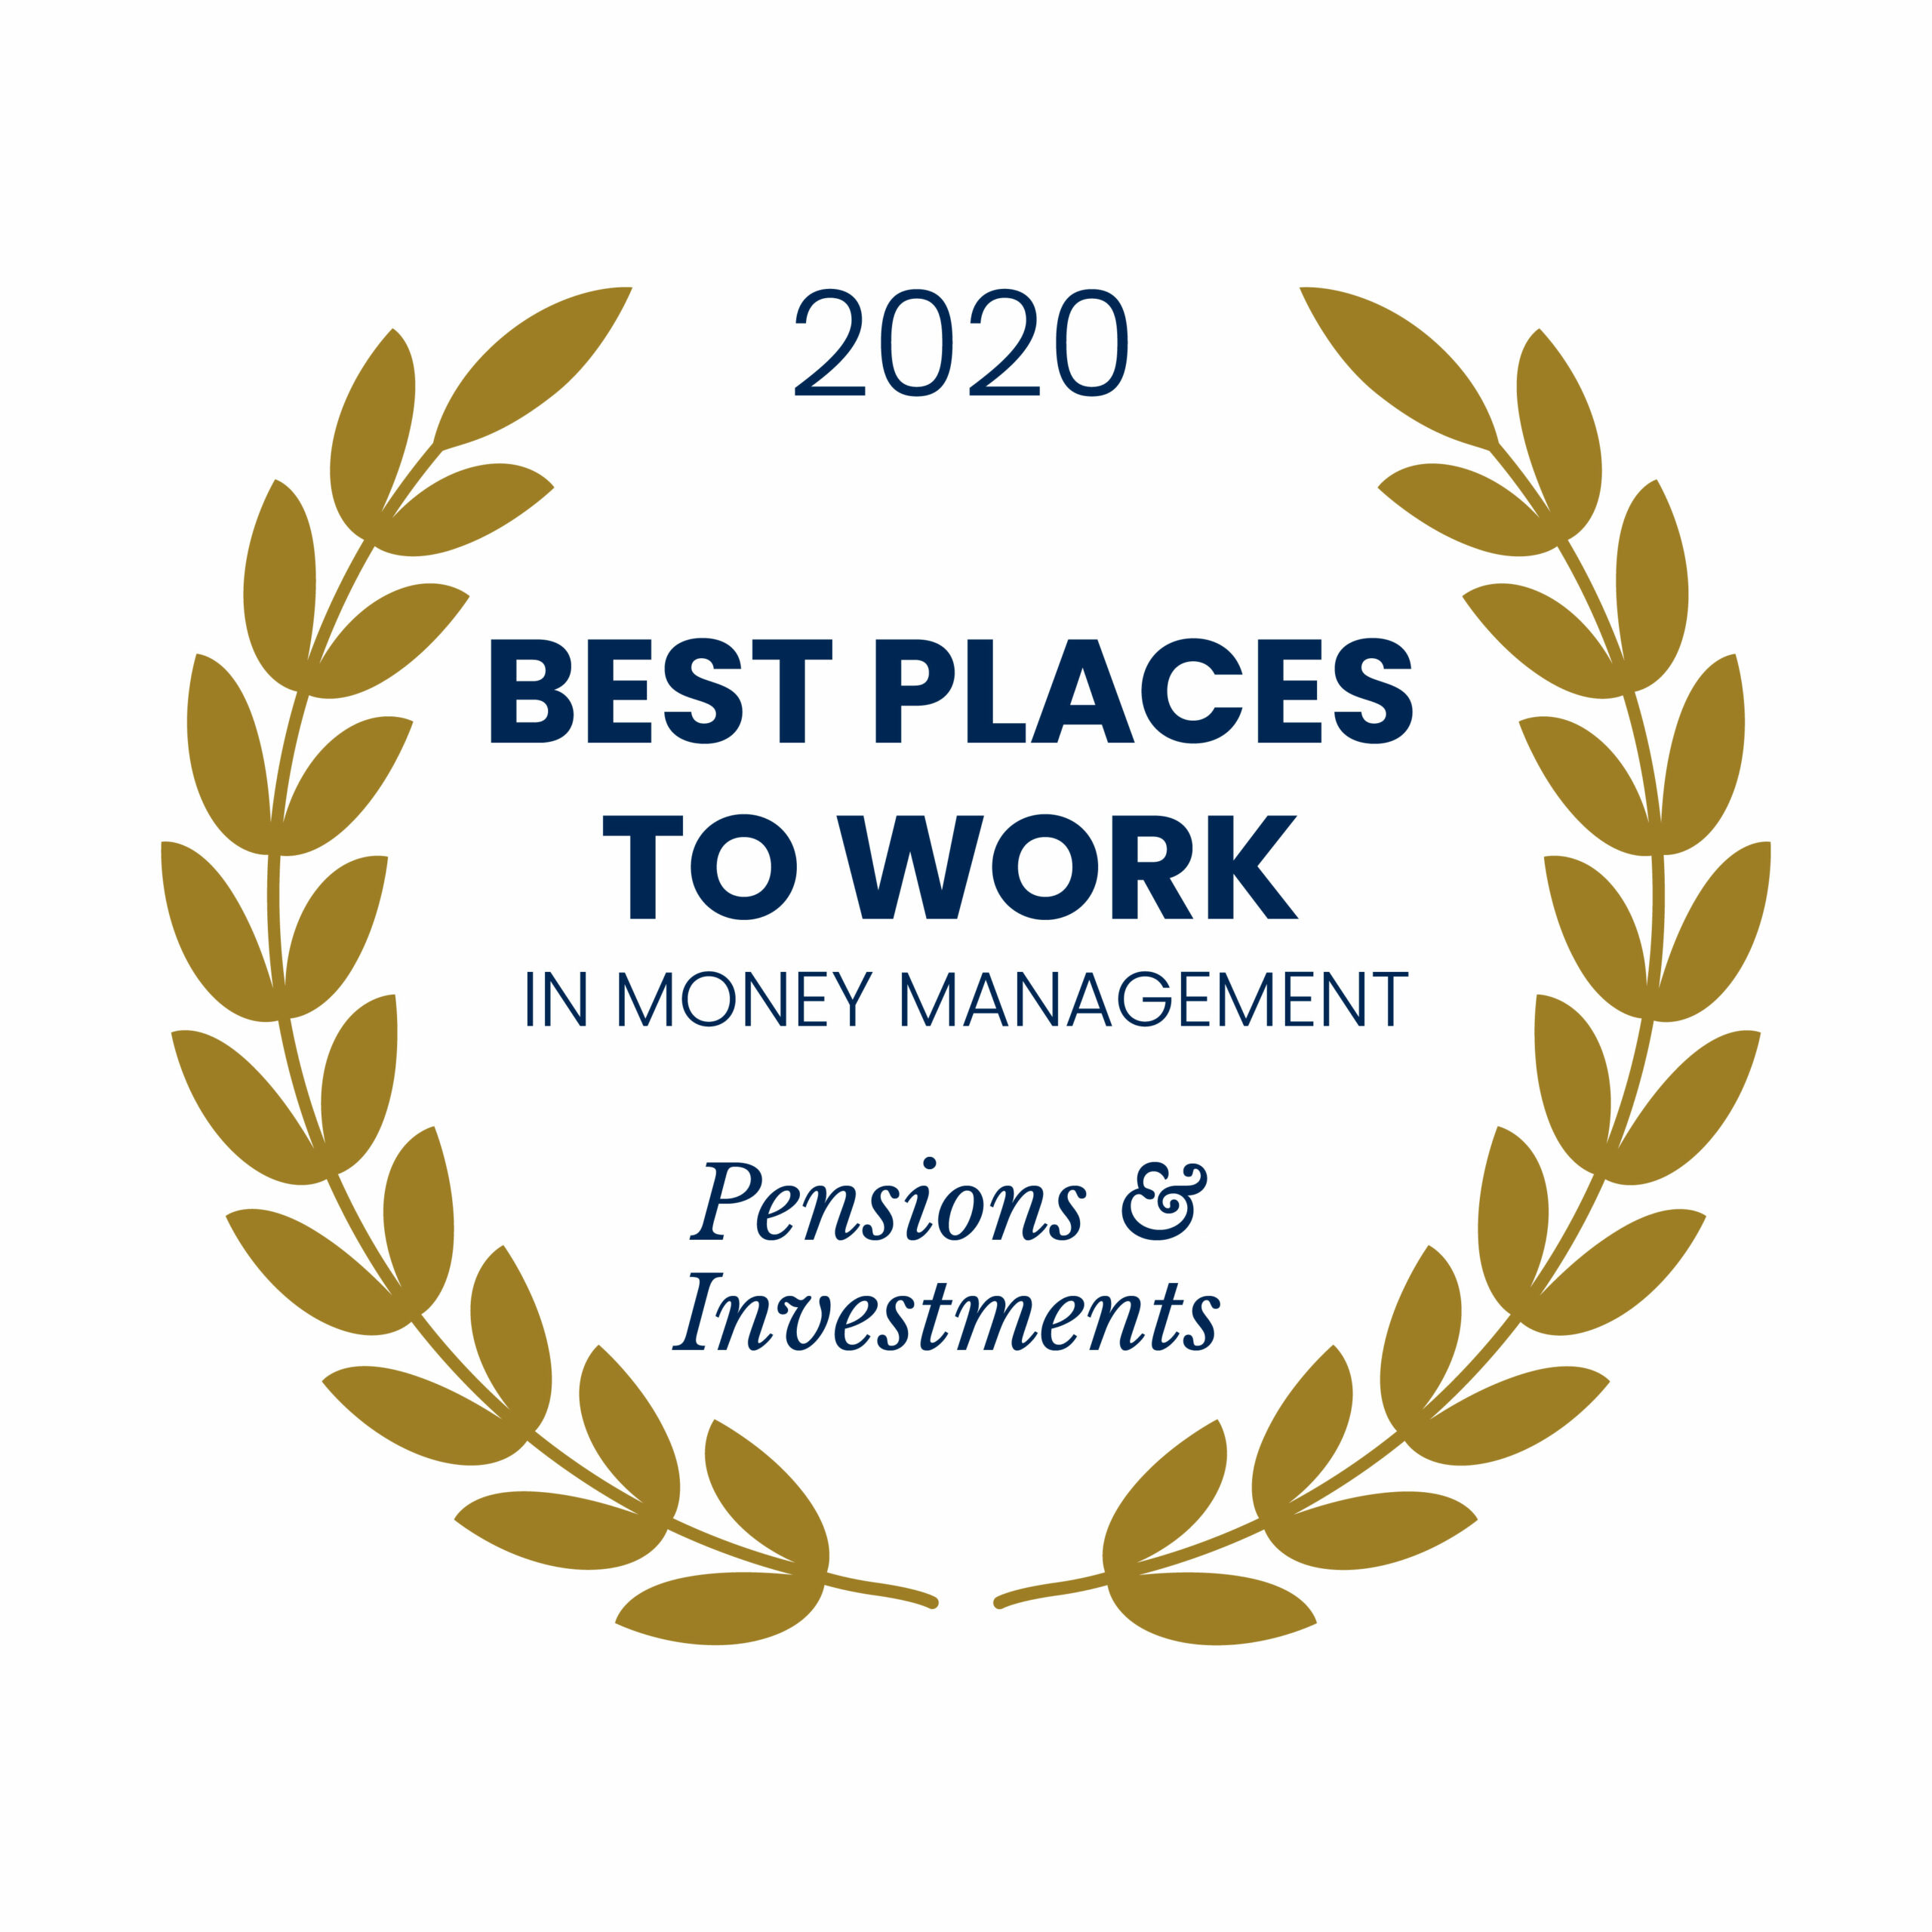 Award emblem for Pensions and Investments Best Places to Work in Money Management